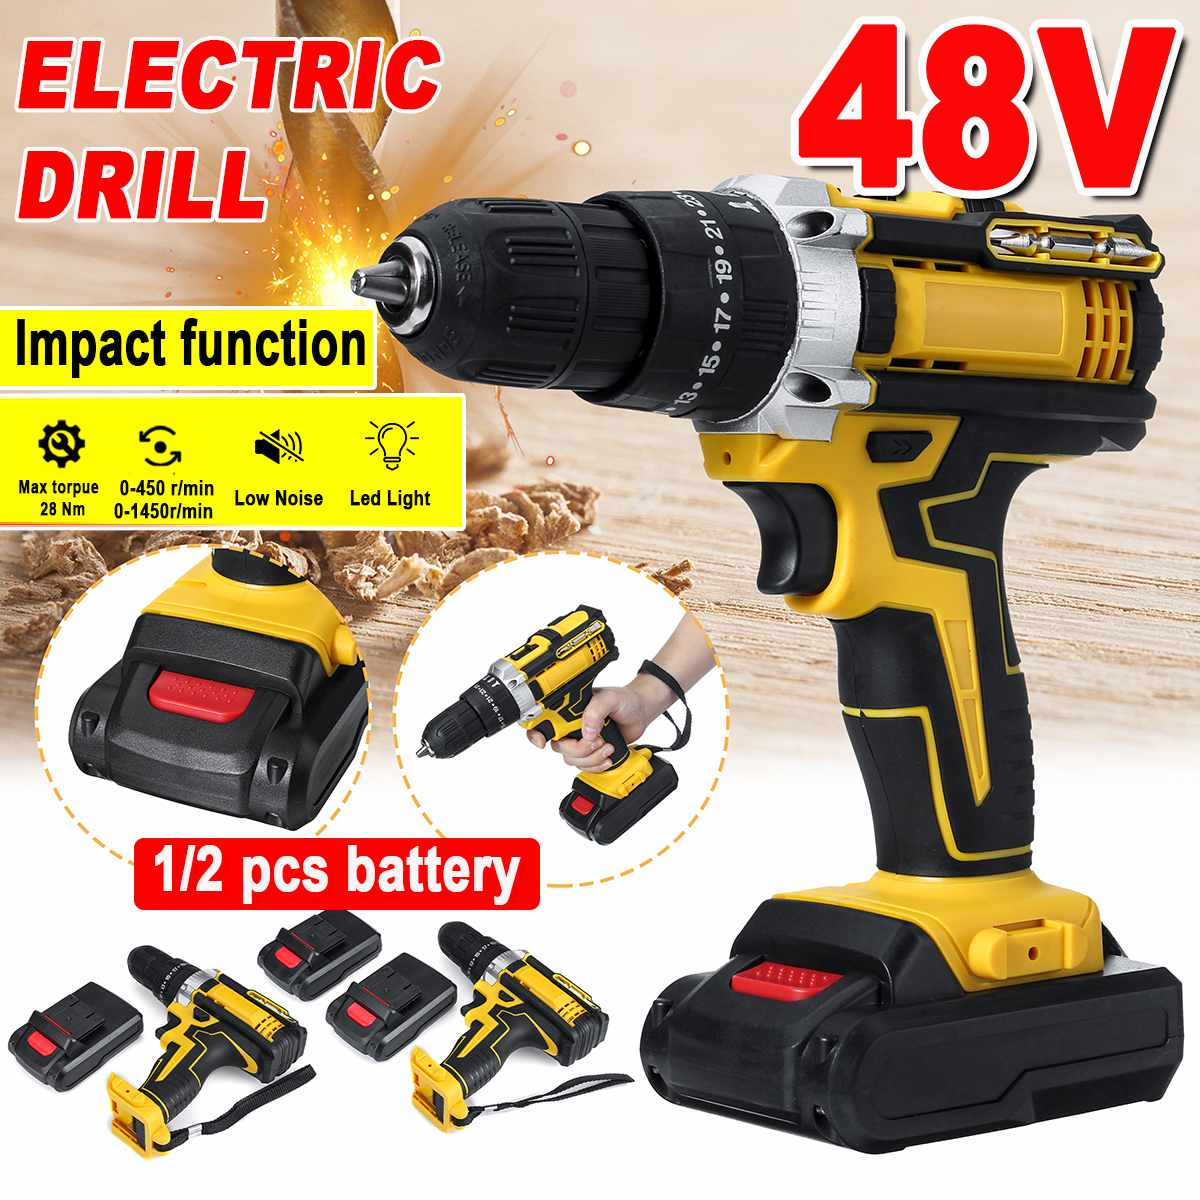 Professional 3 In 1 48V Max <font><b>Electric</b></font> <font><b>Screwdriver</b></font> <font><b>Cordless</b></font> <font><b>Drill</b></font> <font><b>Impact</b></font> <font><b>Drill</b></font> Power Driver DC Lithium-Ion Battery 2-Speed 25-28Nm image